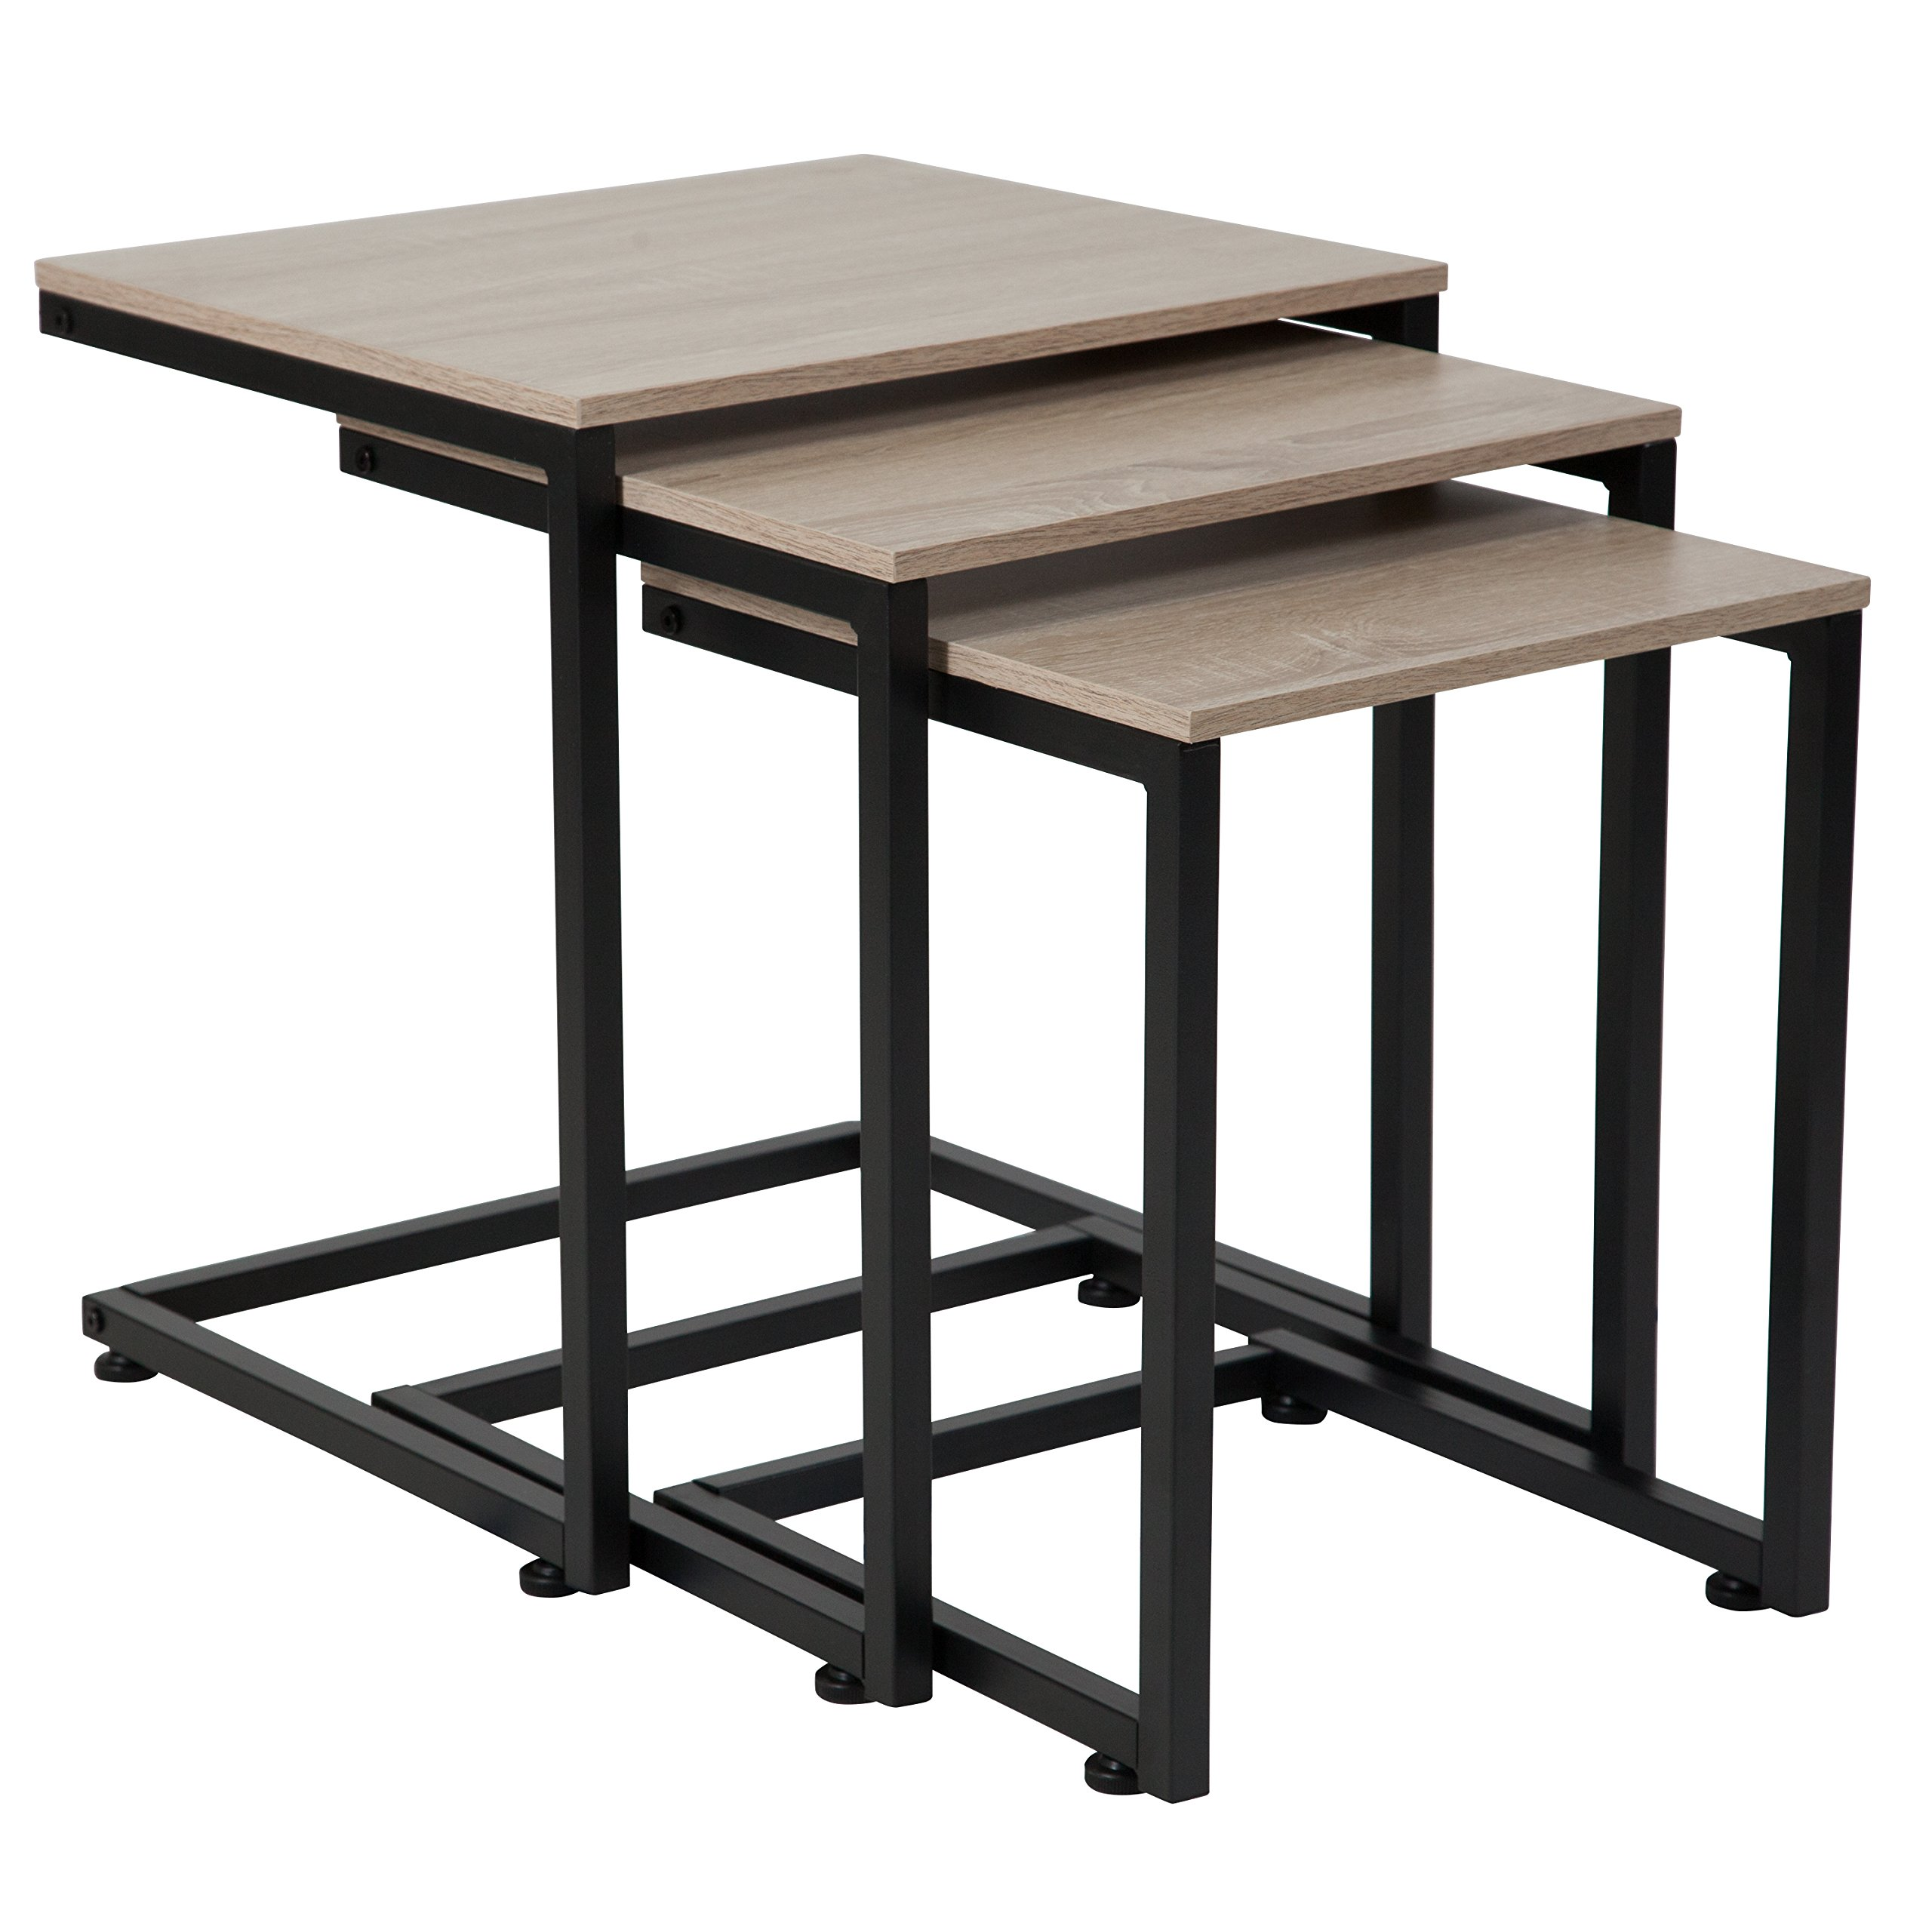 Flash Furniture Midtown Collection Sonoma Oak Wood Grain Finish Nesting Tables with Black Metal Cantilever Base by Flash Furniture